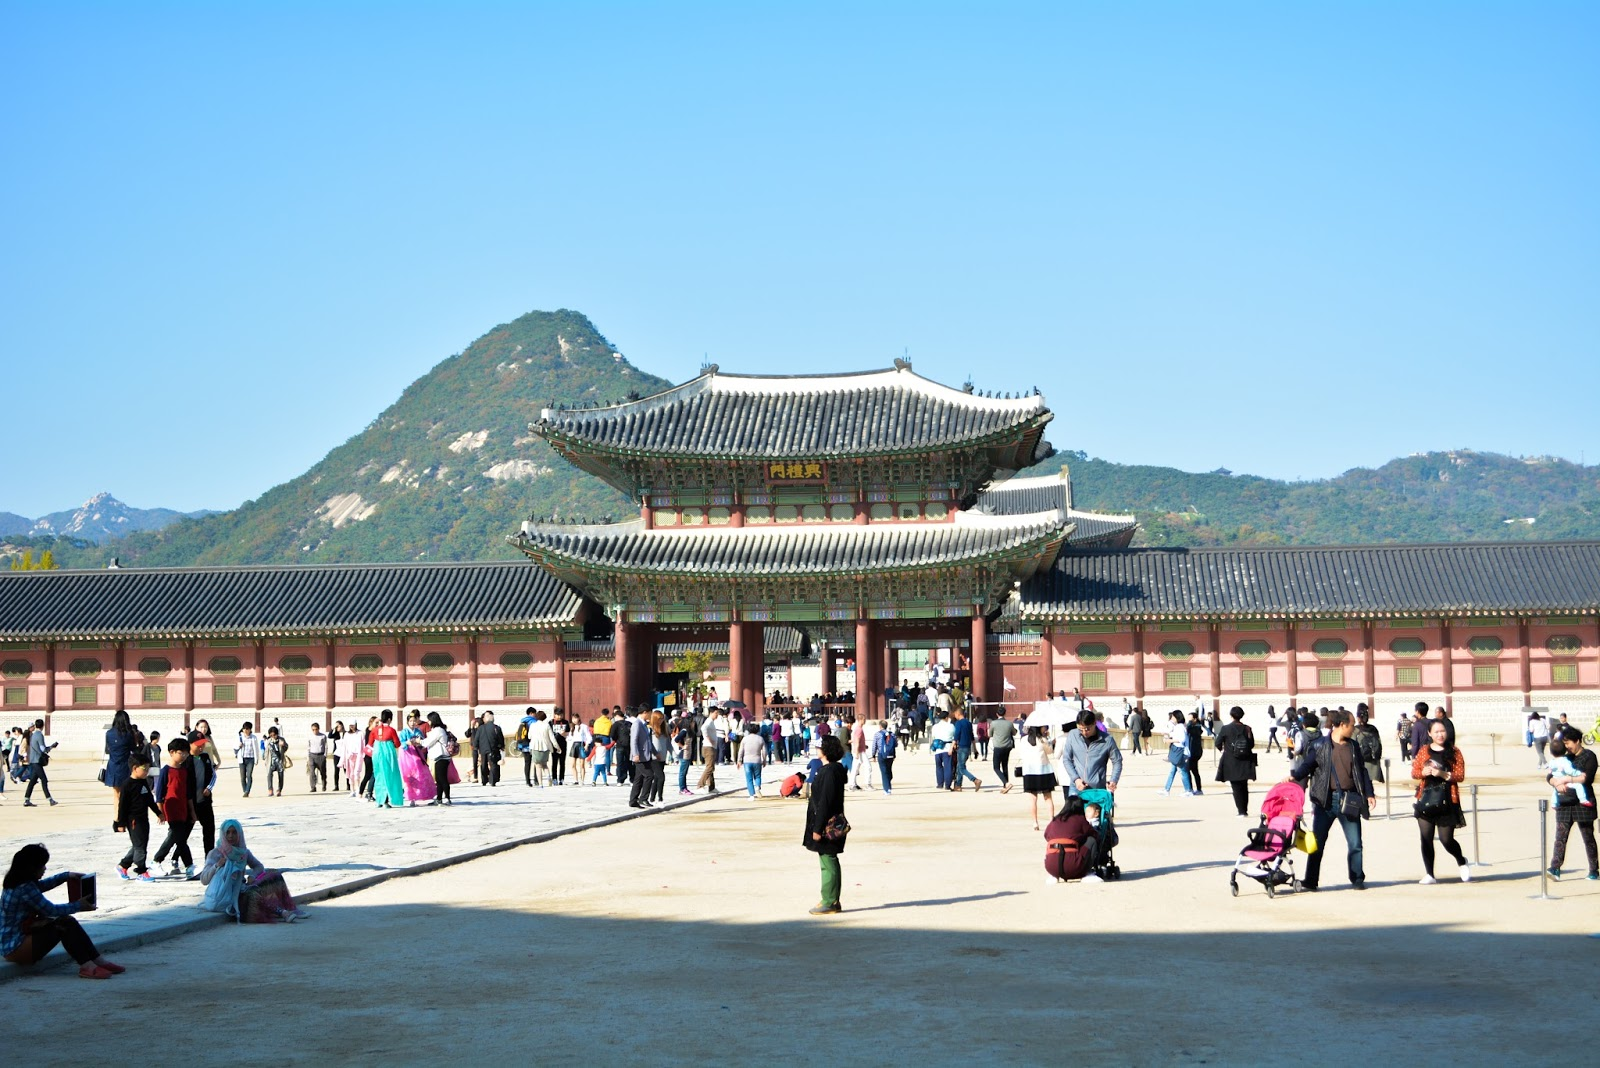 south korea, seoul, traveling, wanderlust, dangerously me, photography, gyeongbokgung palace